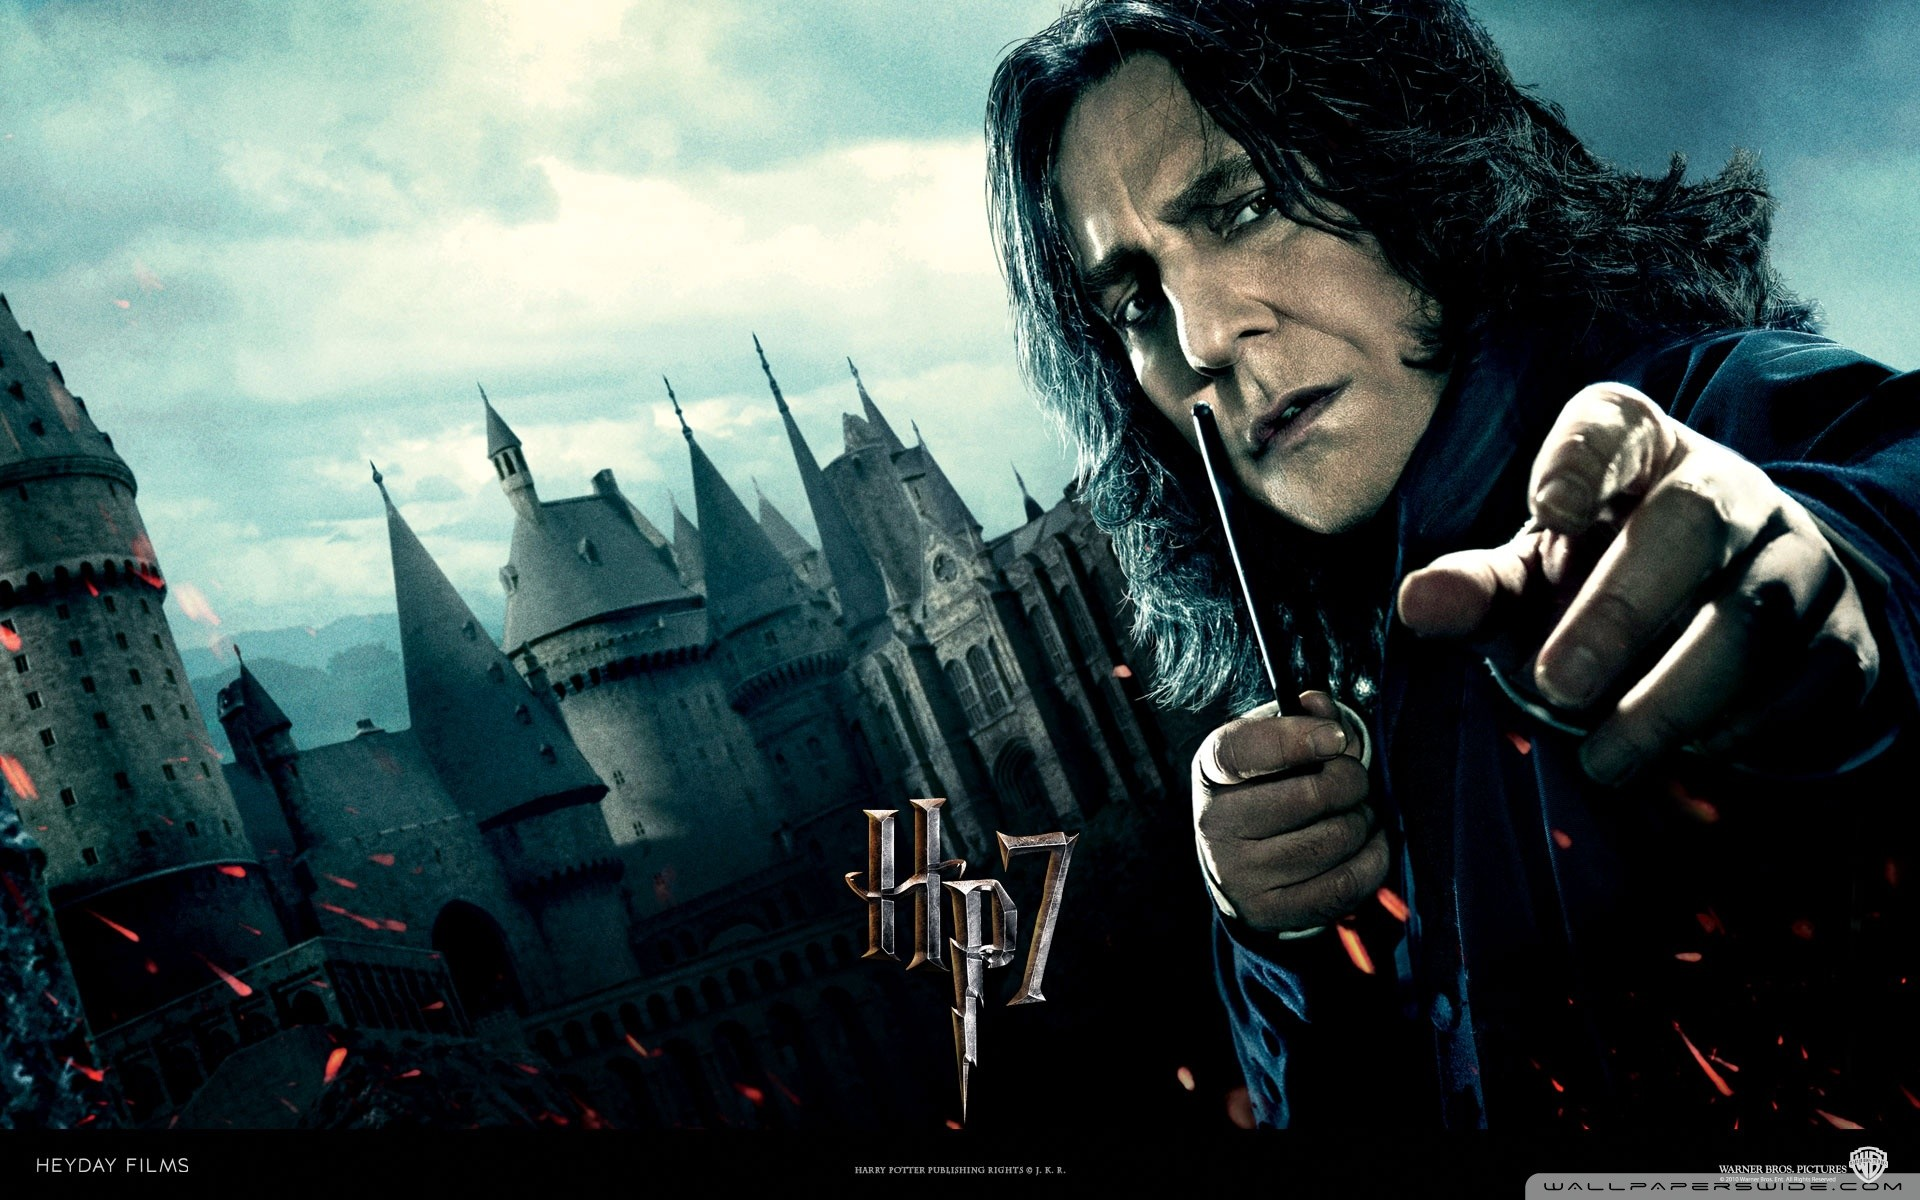 … Amazing Harry Potter Hd Backgrounds Full HD Wallpapers 1080p Free  Download . You Can Also Upload